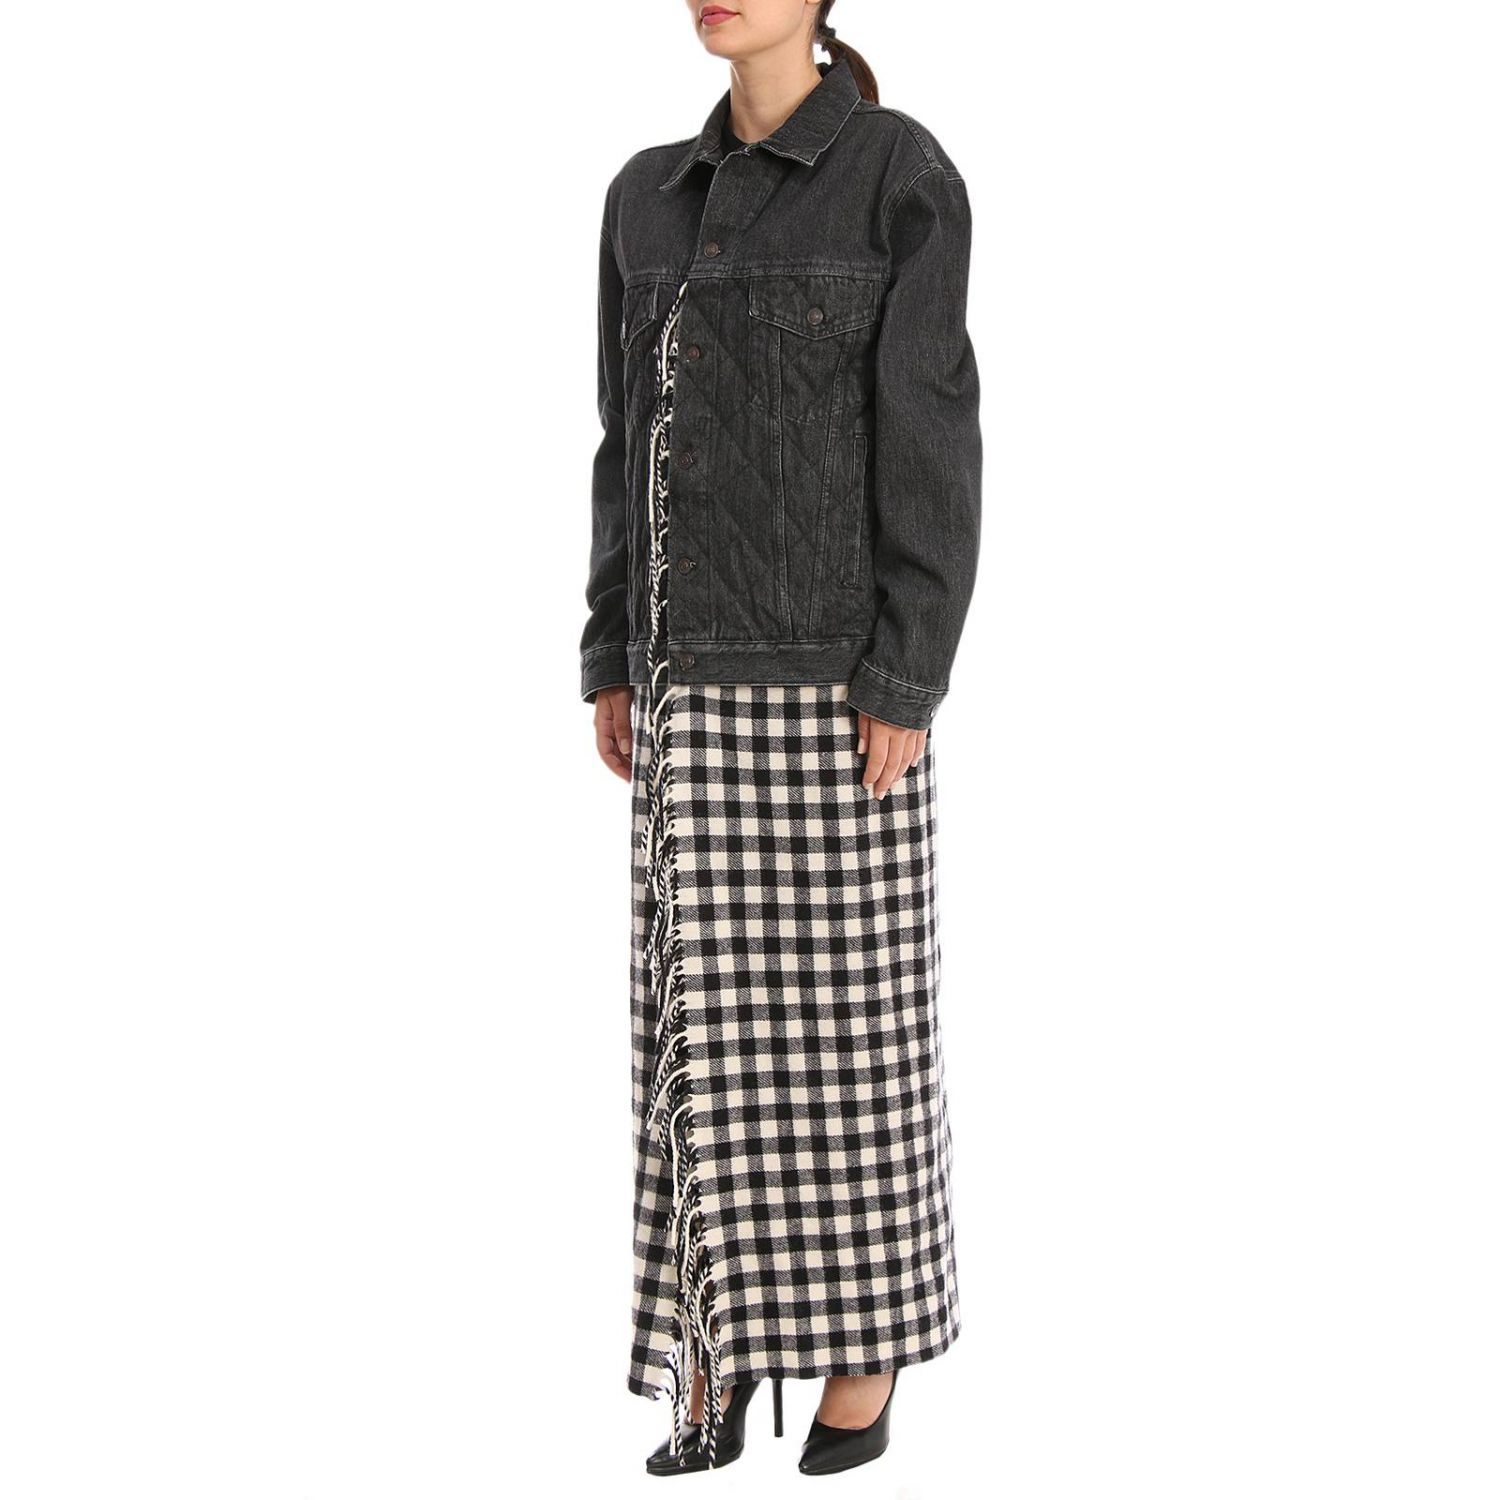 Giubbotto in denim over con maxi plaid check in stile coperta nero 2